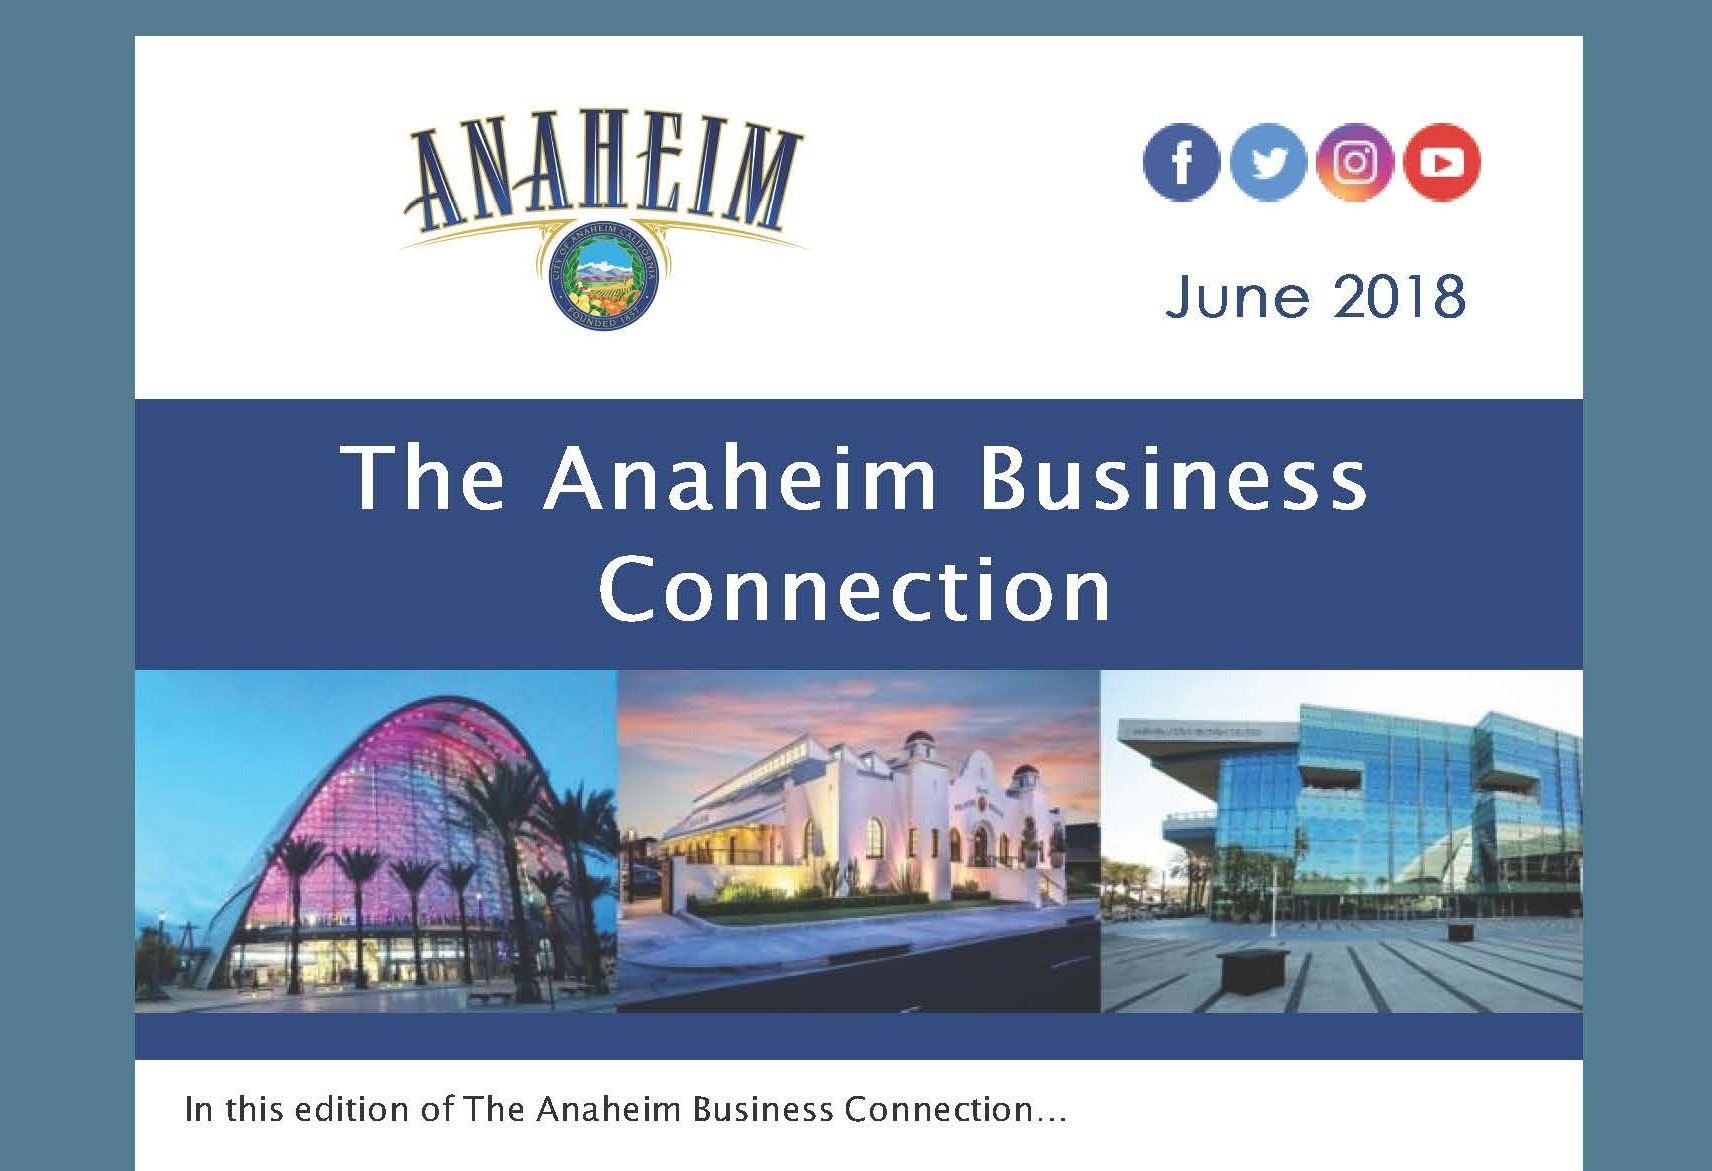 The Anaheim Business Connection - June 2018